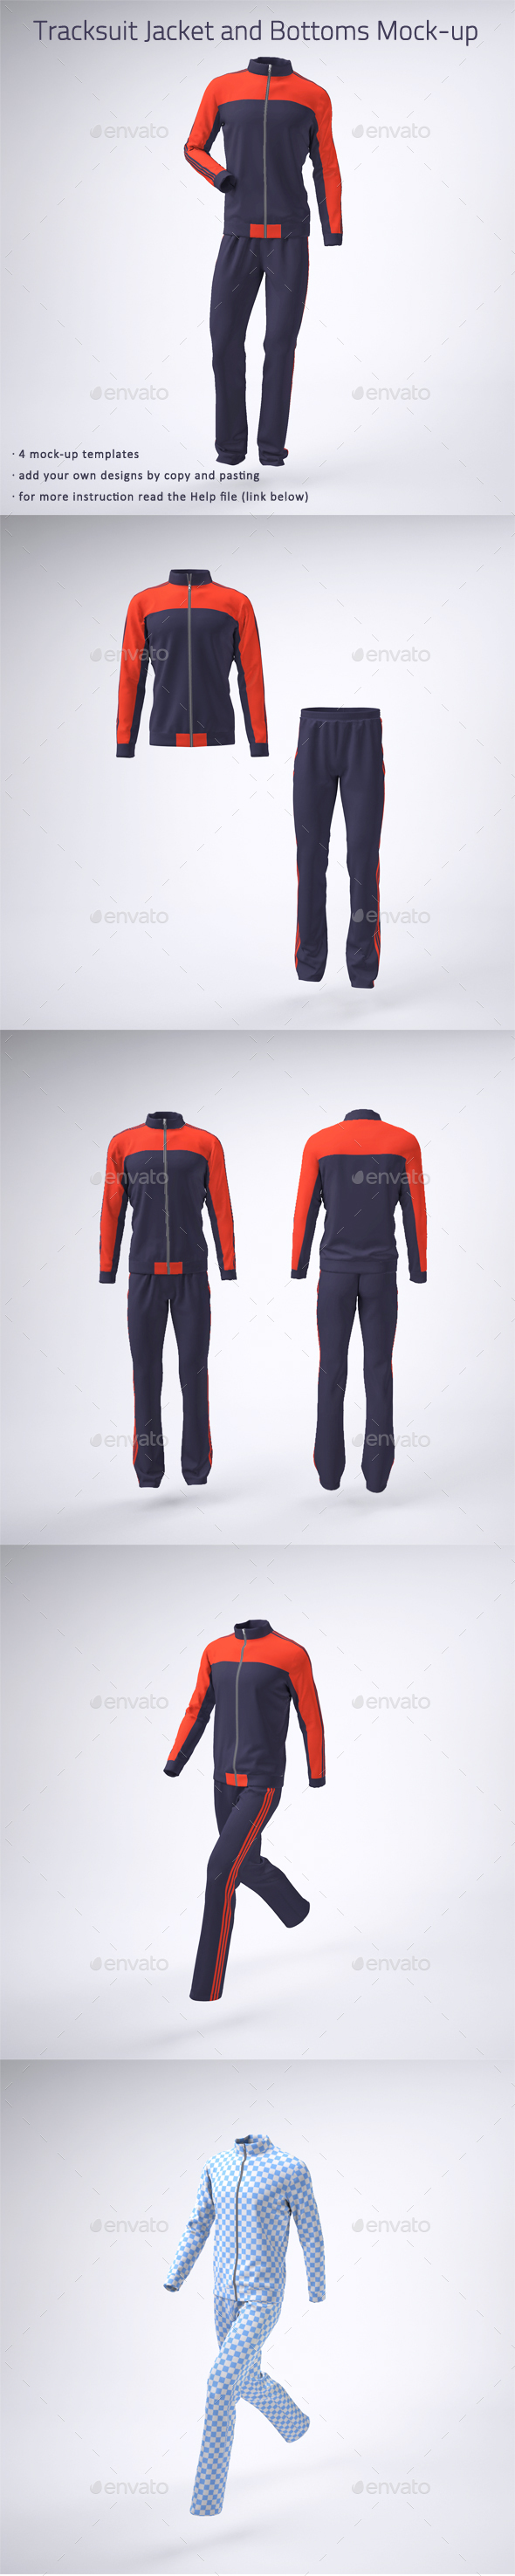 GraphicRiver Tracksuit Jacket and Bottoms Mock-up 21125201